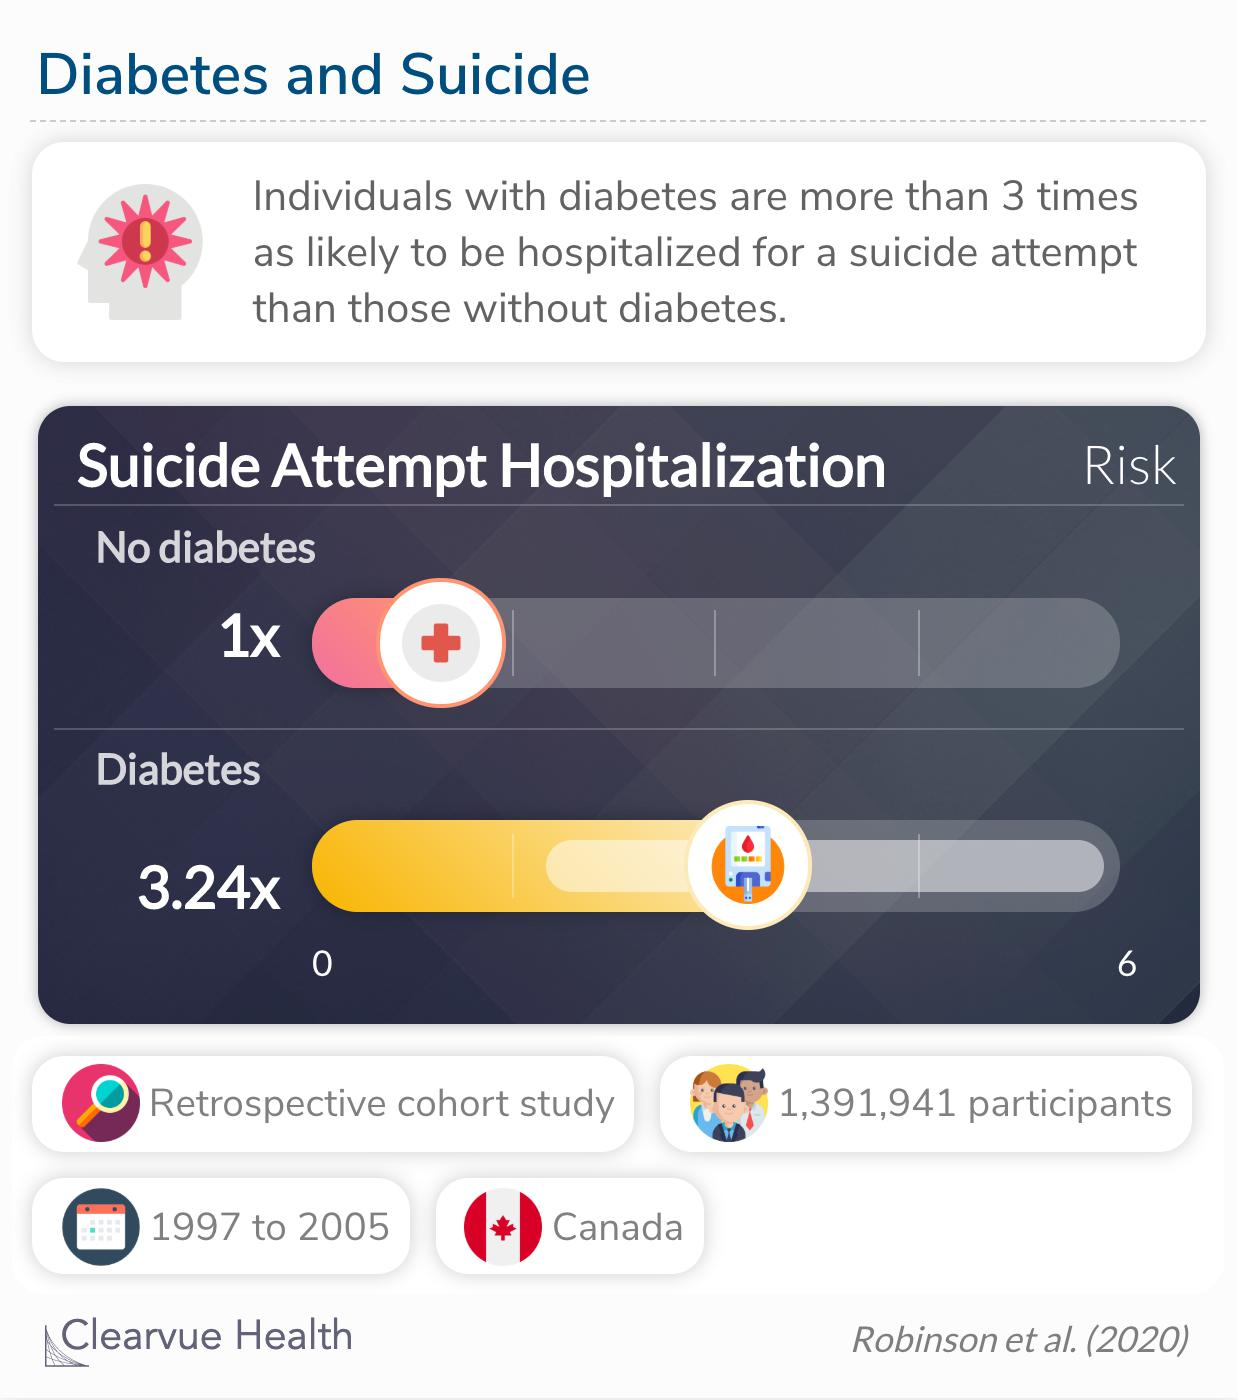 Individuals with (versus without) diabetes were more likely to be admitted to the hospital for a suicide attempt.